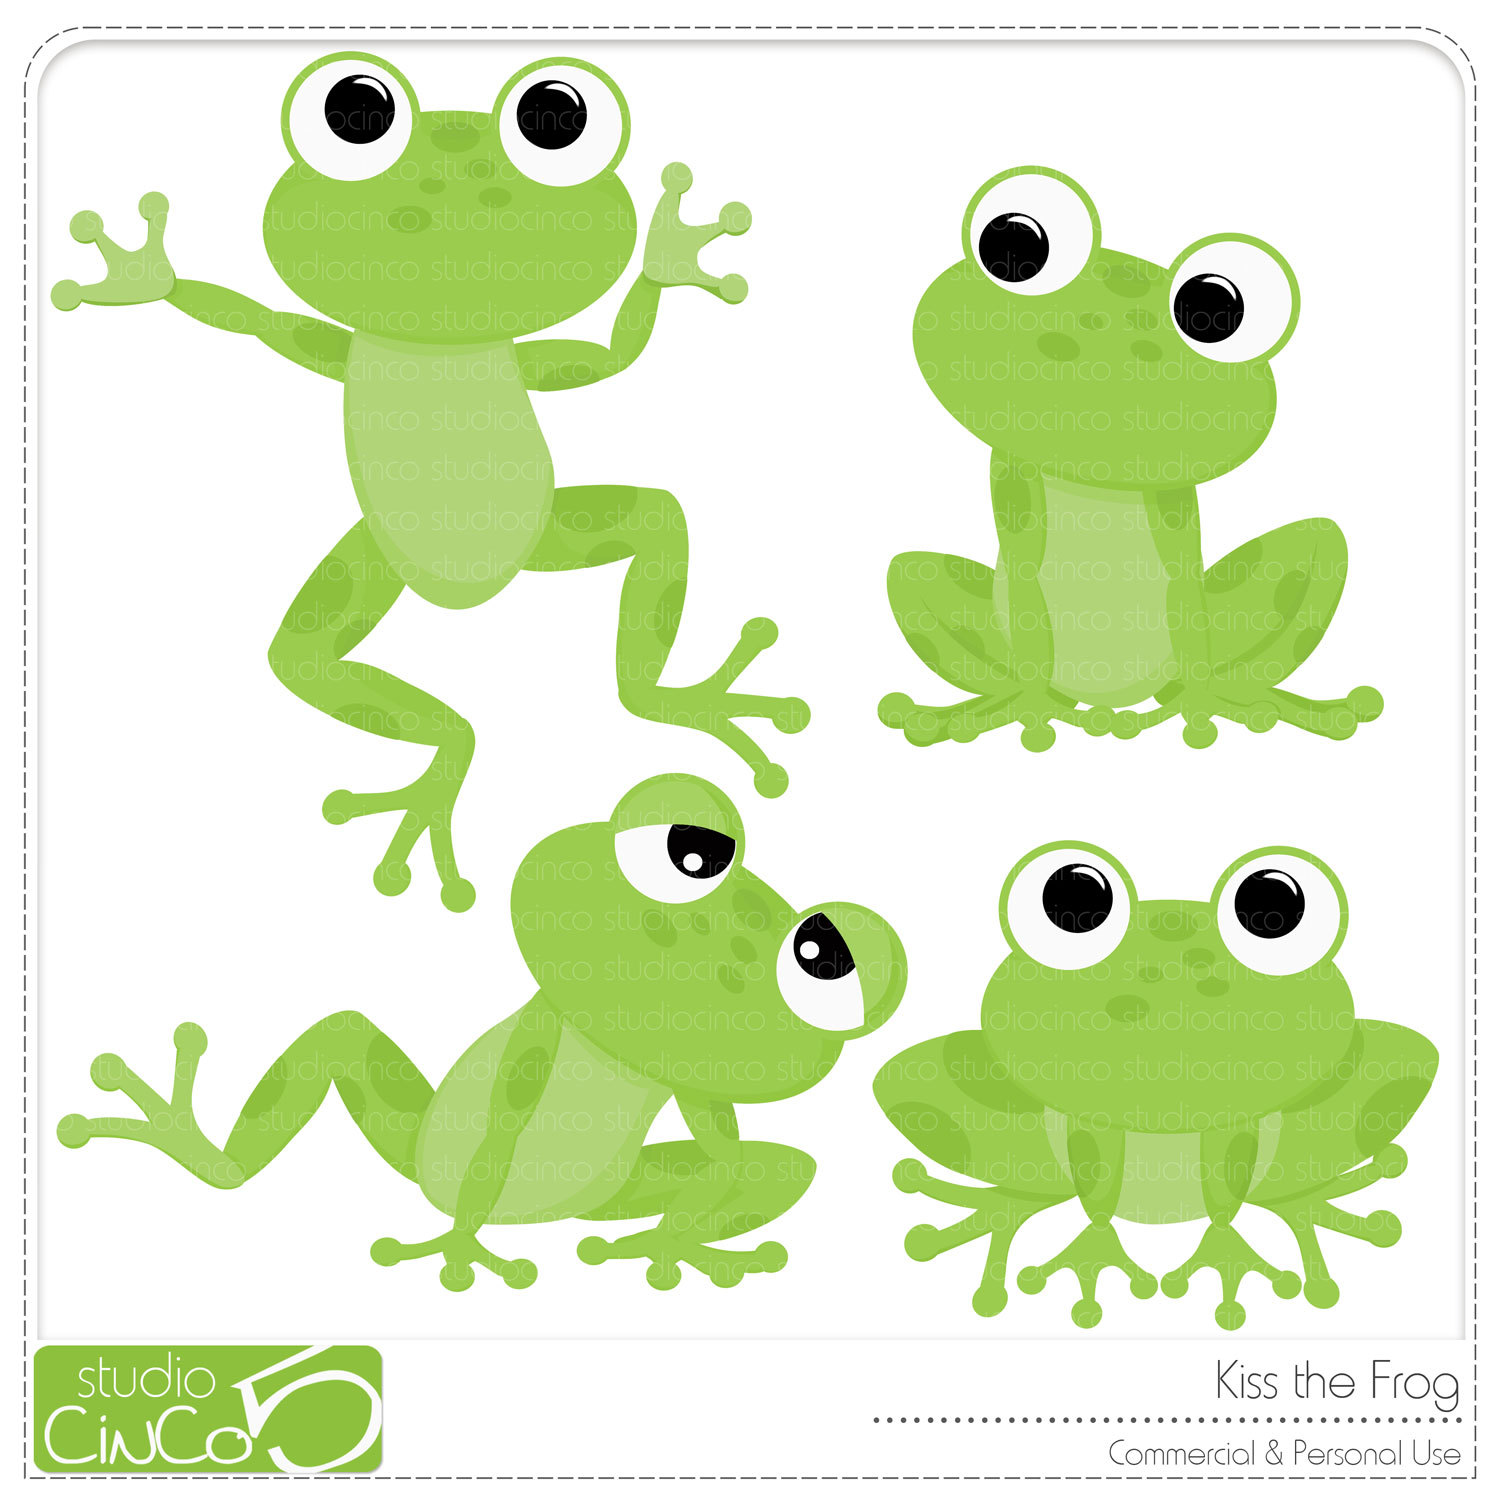 Frog Clipart Frog Clipart Frog Clipart Frog Clipart Frog Clipart